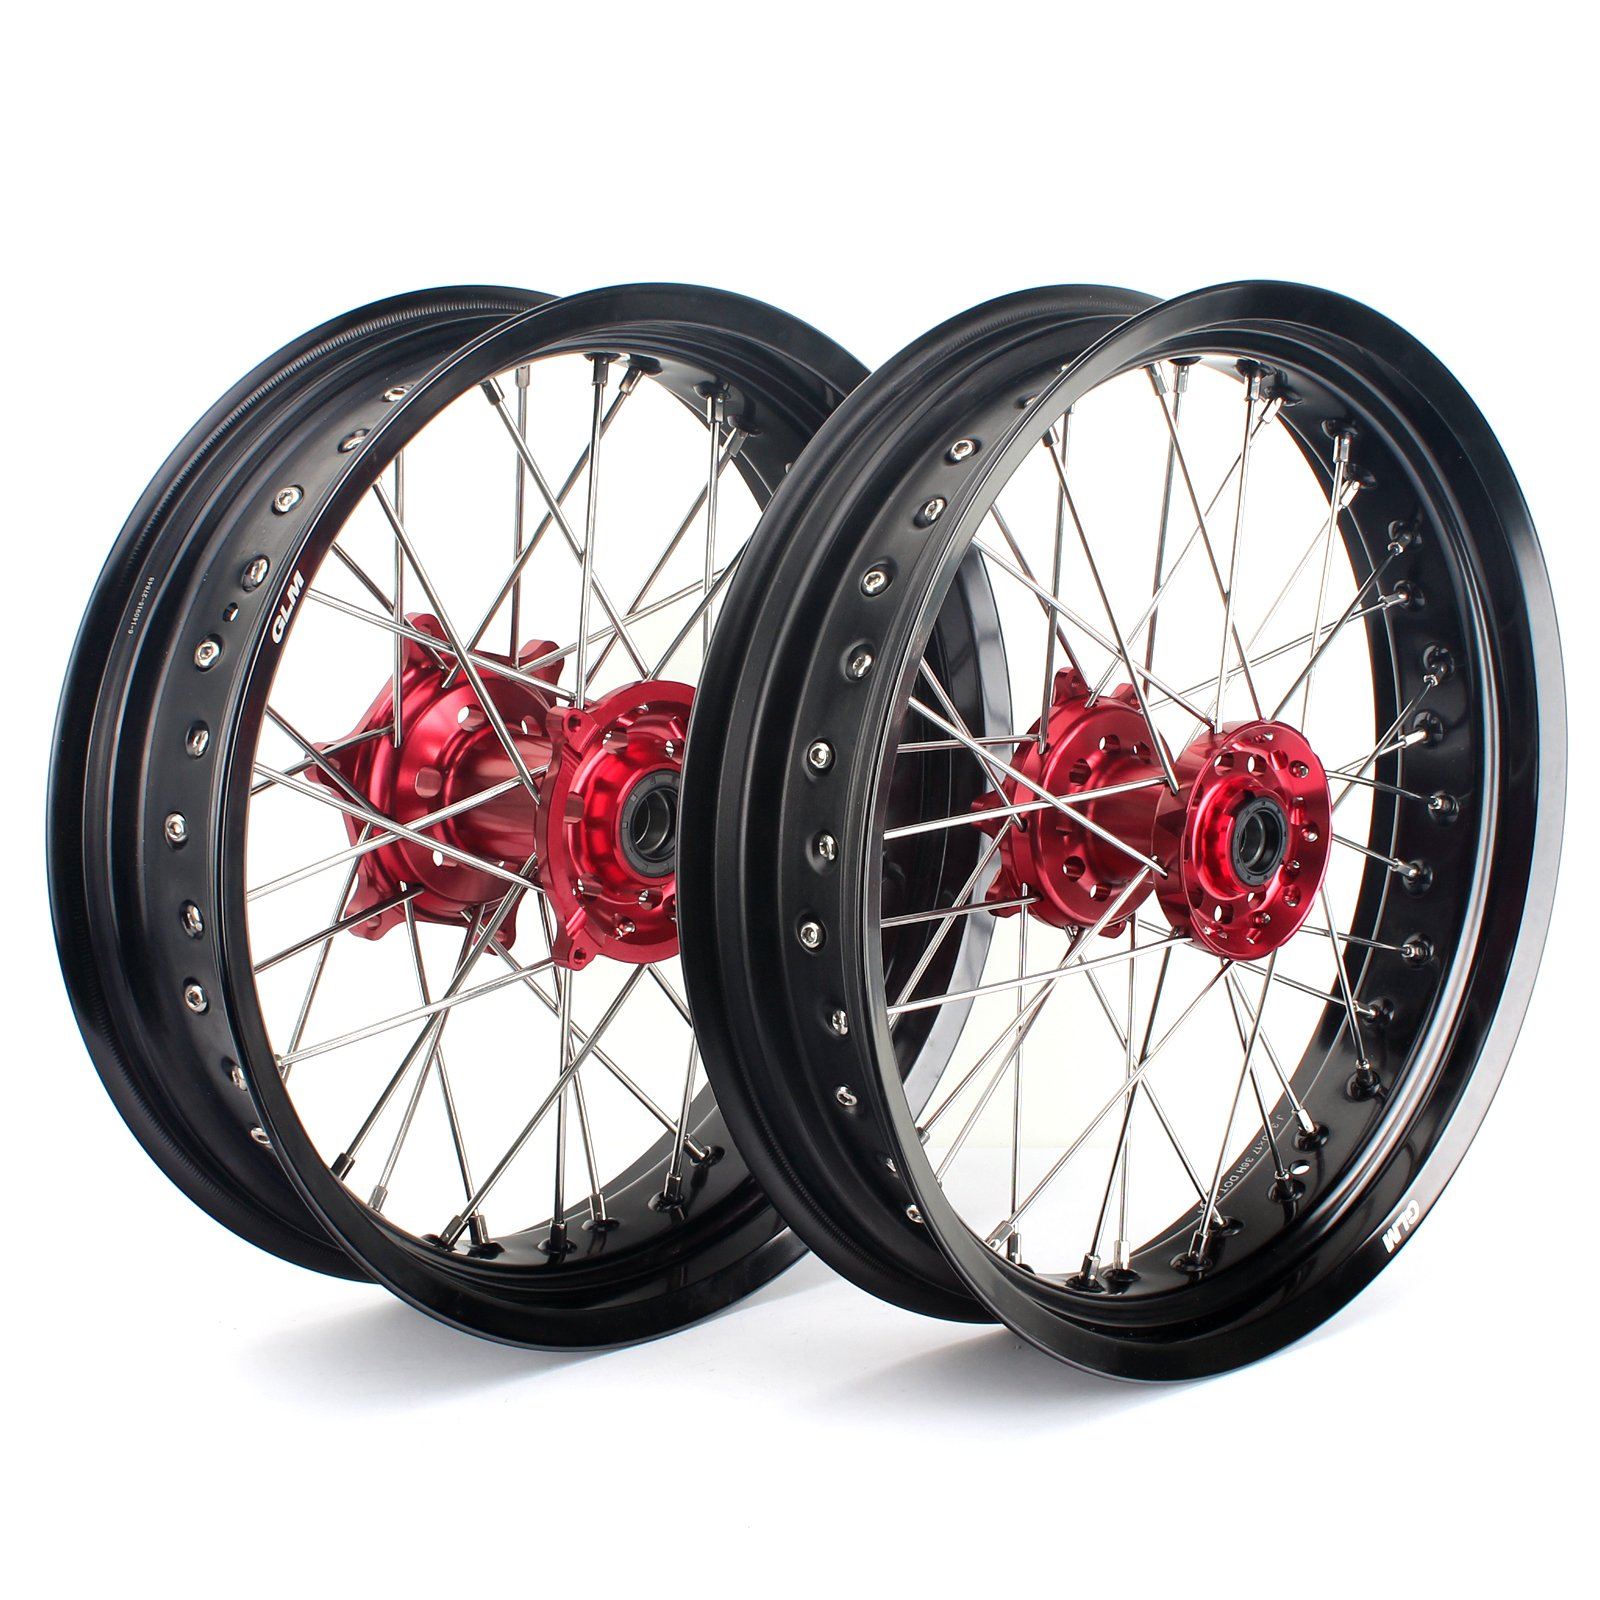 TARAZON 17'' & 17'' Supermoto Complete Wheel Set Red Hubs Black Rims for Honda CRF250R 04-13 CRF450R 02-12 CRF250X 04-16 CRF450X 04-16 CR125R CR250R 02-13 Front and Rear wheels